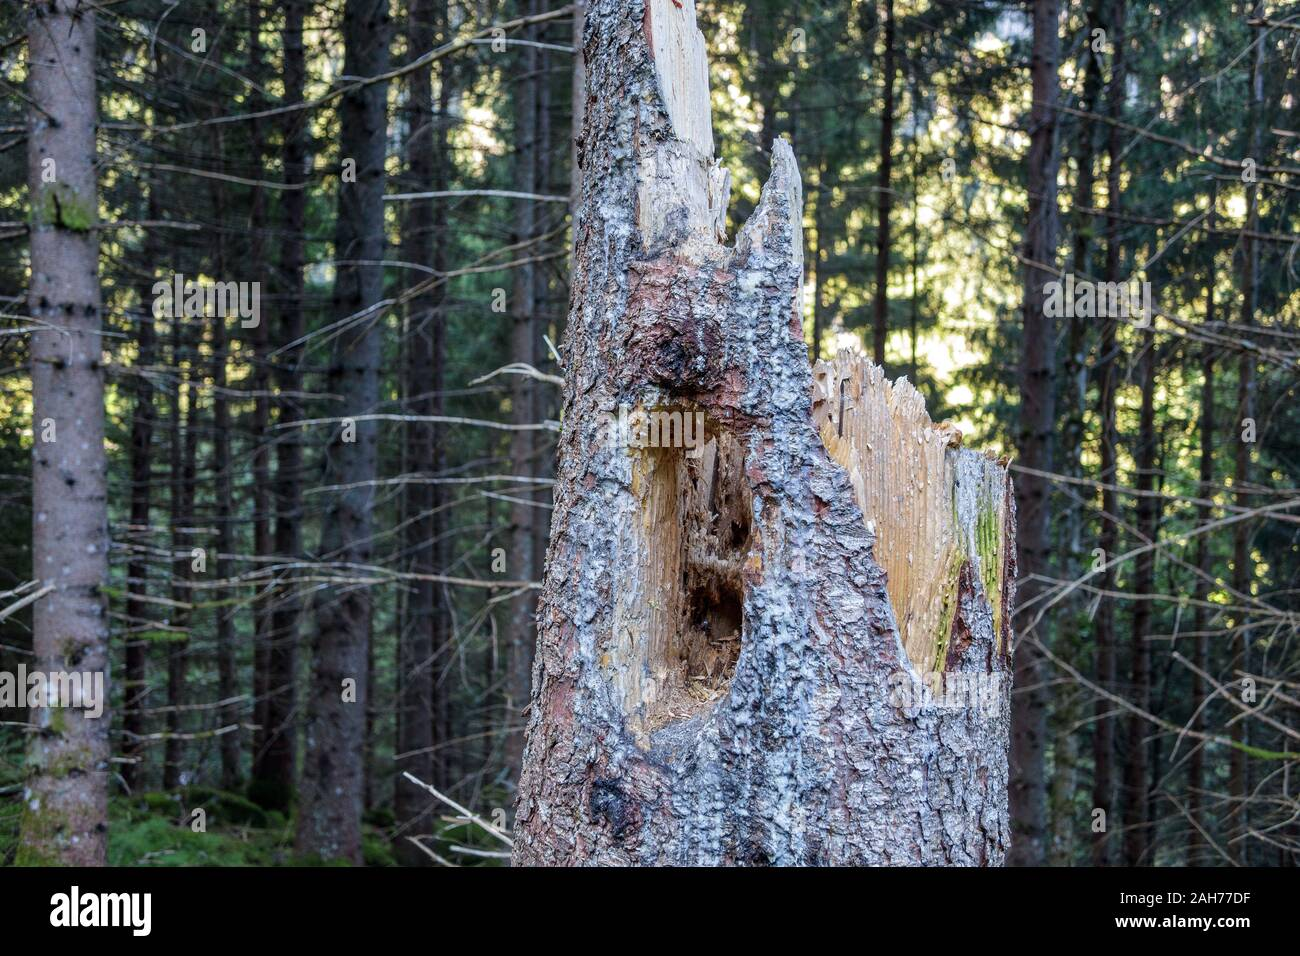 Woodpecker hole.Trunk of dead picea abies tree, bark, spruce forest. Obersulzbachtal. Venediger group. Hohe Tauern National Park. Sulzau. Austrian Alps Stock Photo